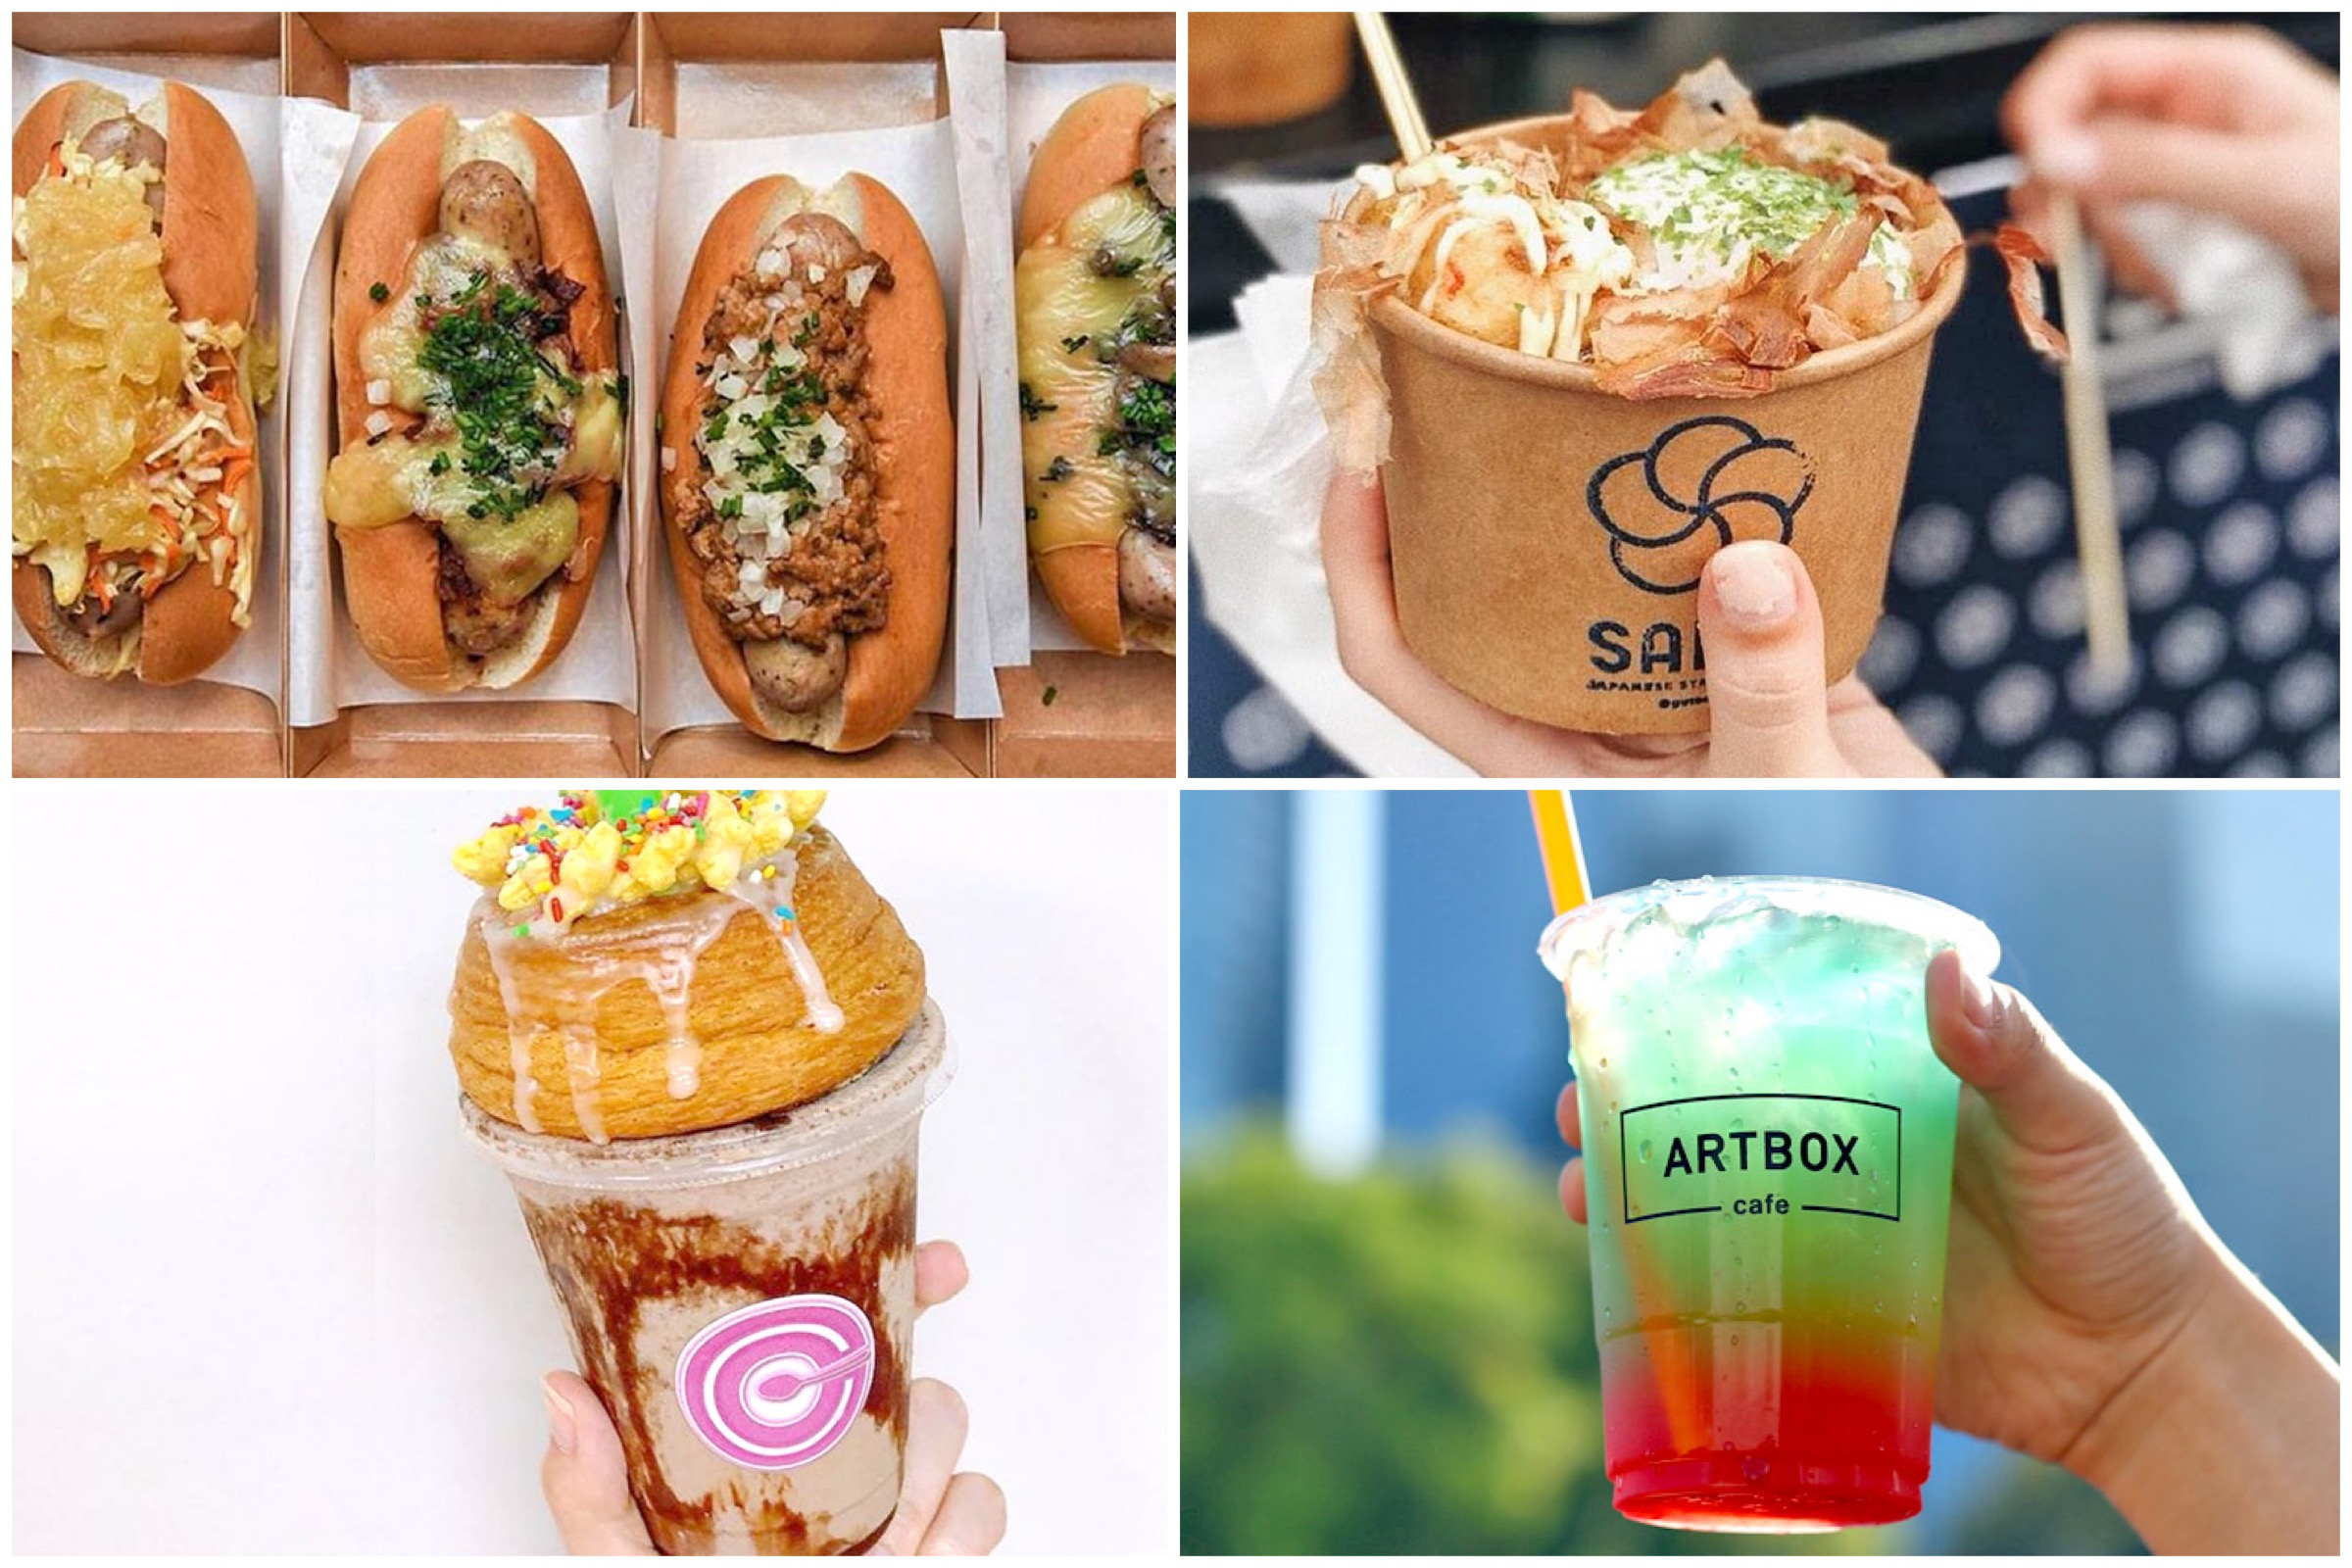 Artbox Singapore 2018 - 10 Food & Drink Stalls To Look Forward To, At Bayfront 25 to 27 May & 1 to 3 June